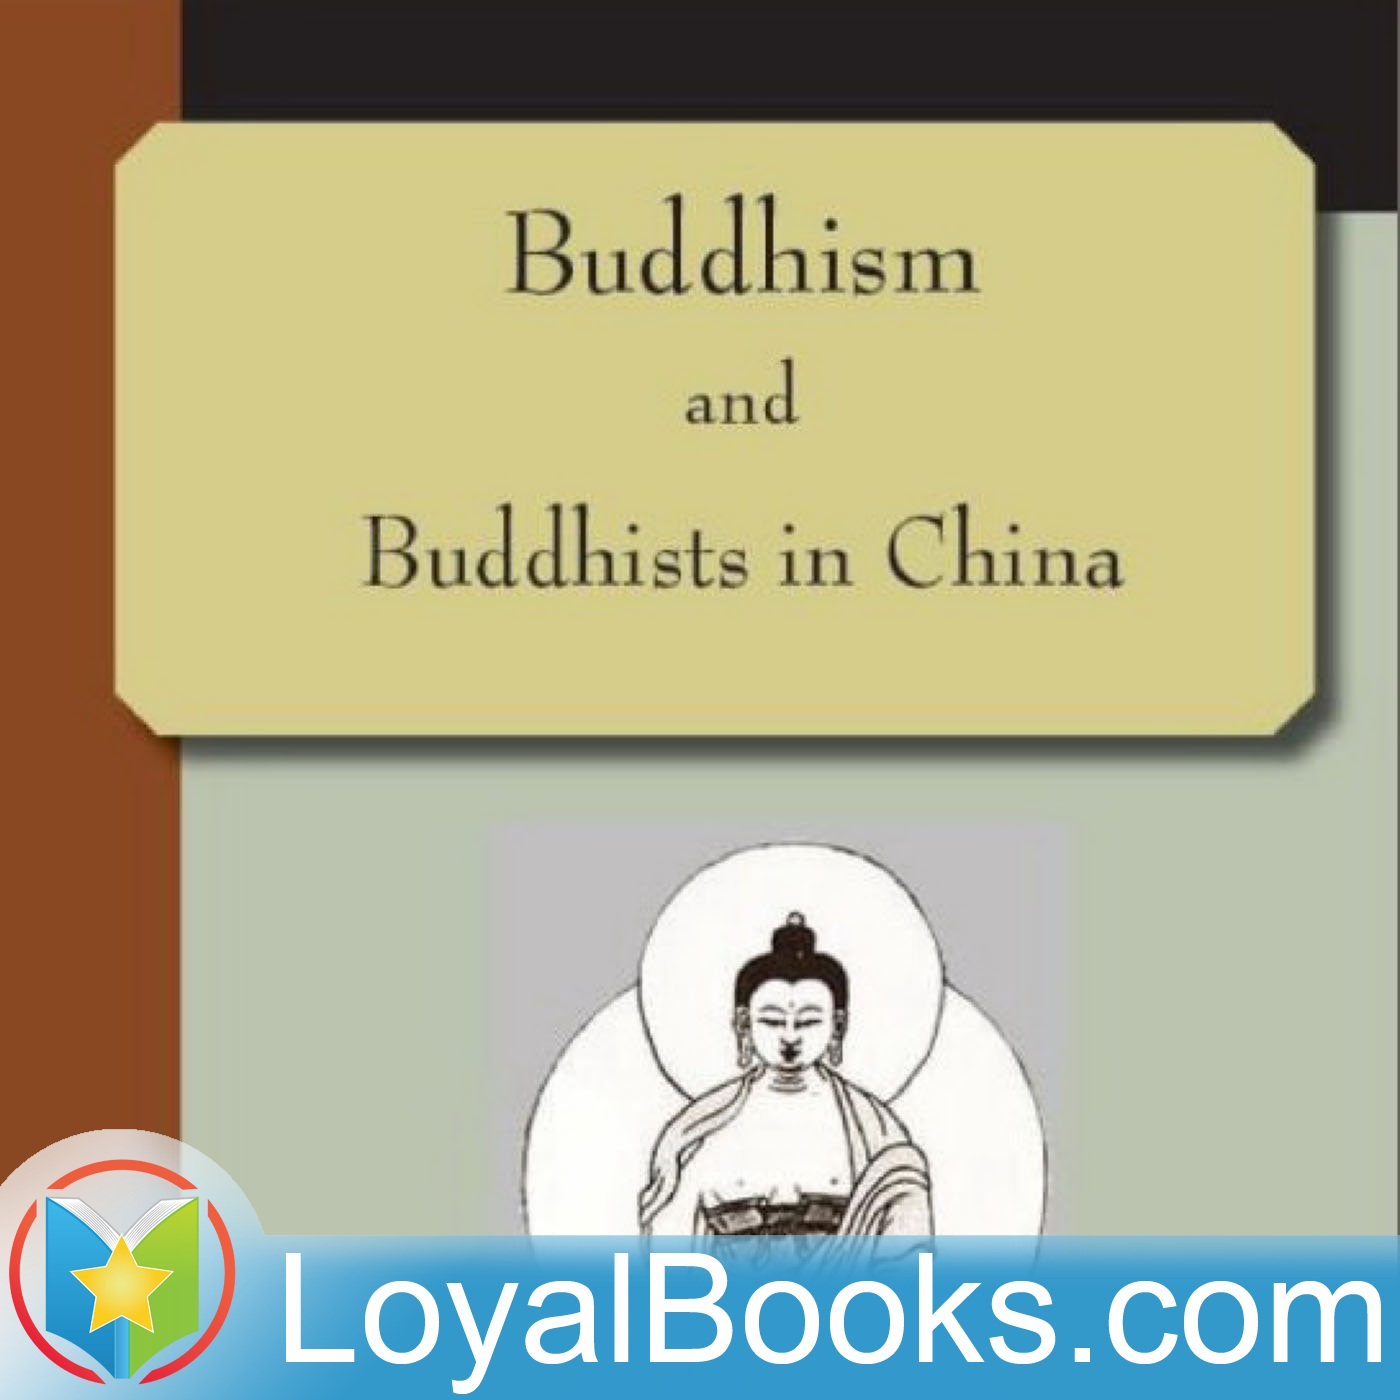 <![CDATA[Buddhism and Buddhists in China by Lewis Hodus]]>